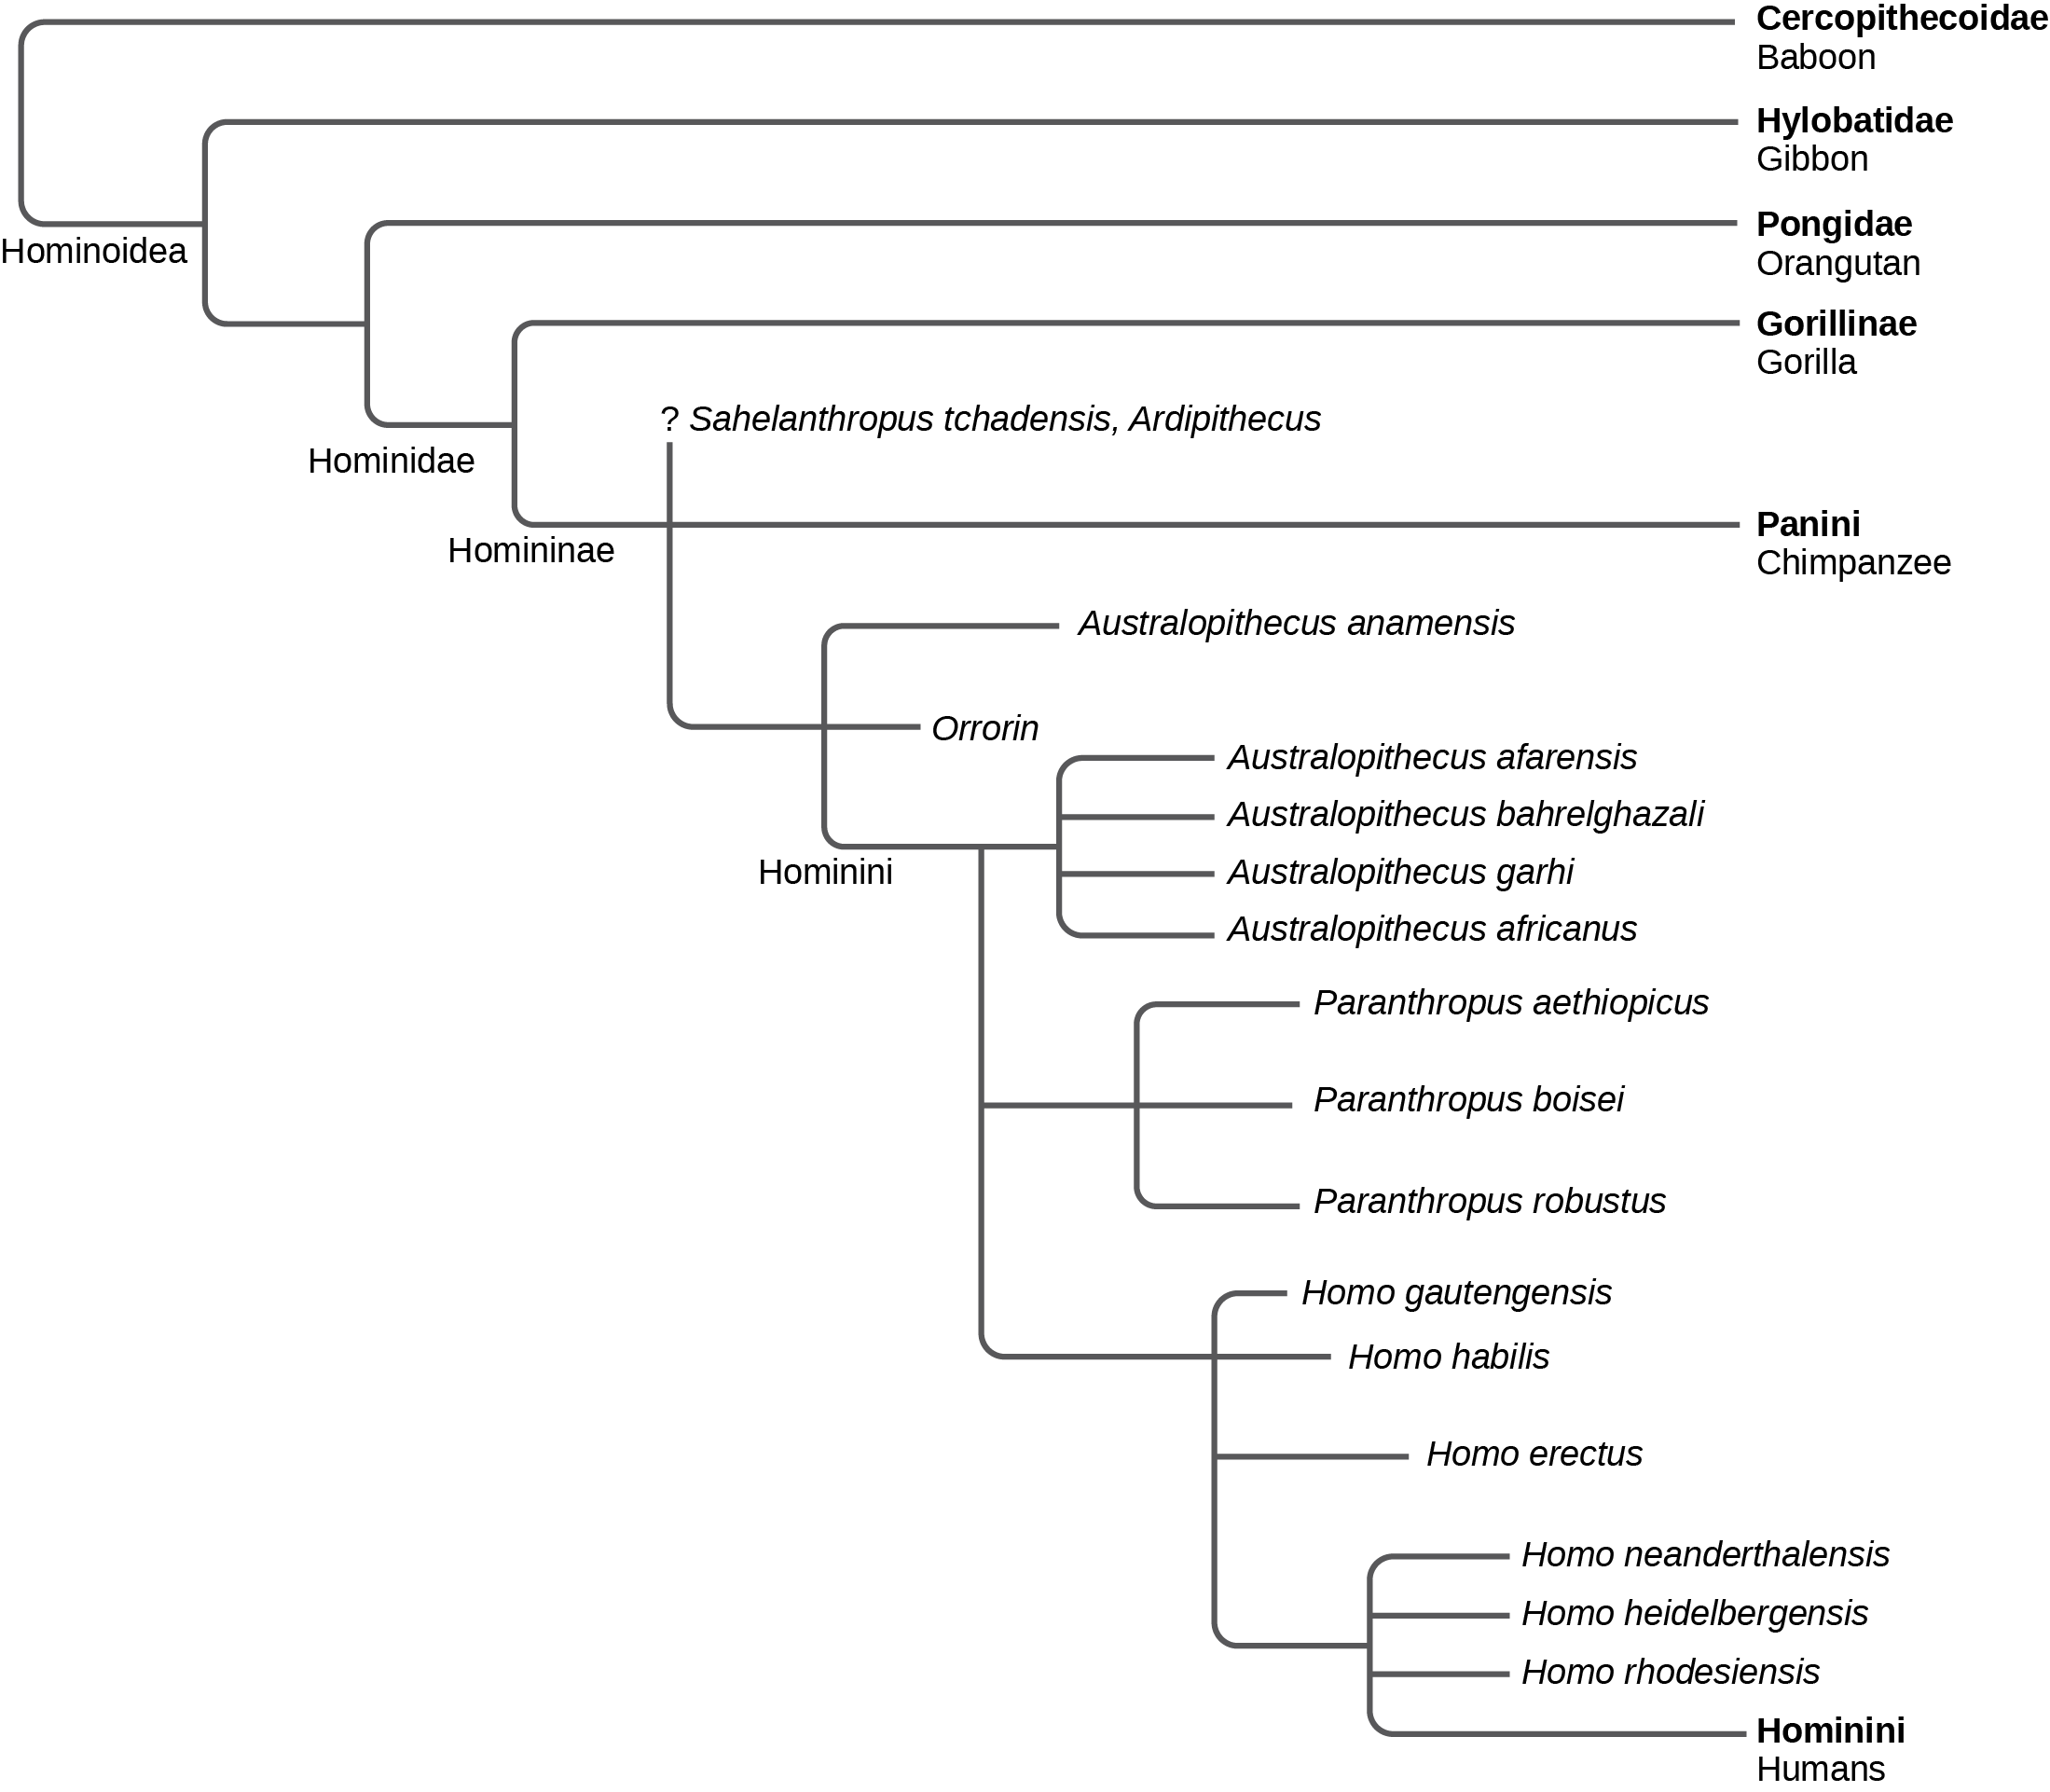 The evolutionary tree shows the relationship between humans and the great apes. All great apes, including baboons, gibbons, orangutans, gorillas, chimpanzees, humans, and human ancestors, belong in the superfamily Hominoidea. Of these great apes, all but baboons and gibbons belong in the family Hominidae. Gorillas, chimpanzees, humans, and human ancestors belong in the subfamily Homininae. Humans and their direct ancestors belong in the tribe Hominini.